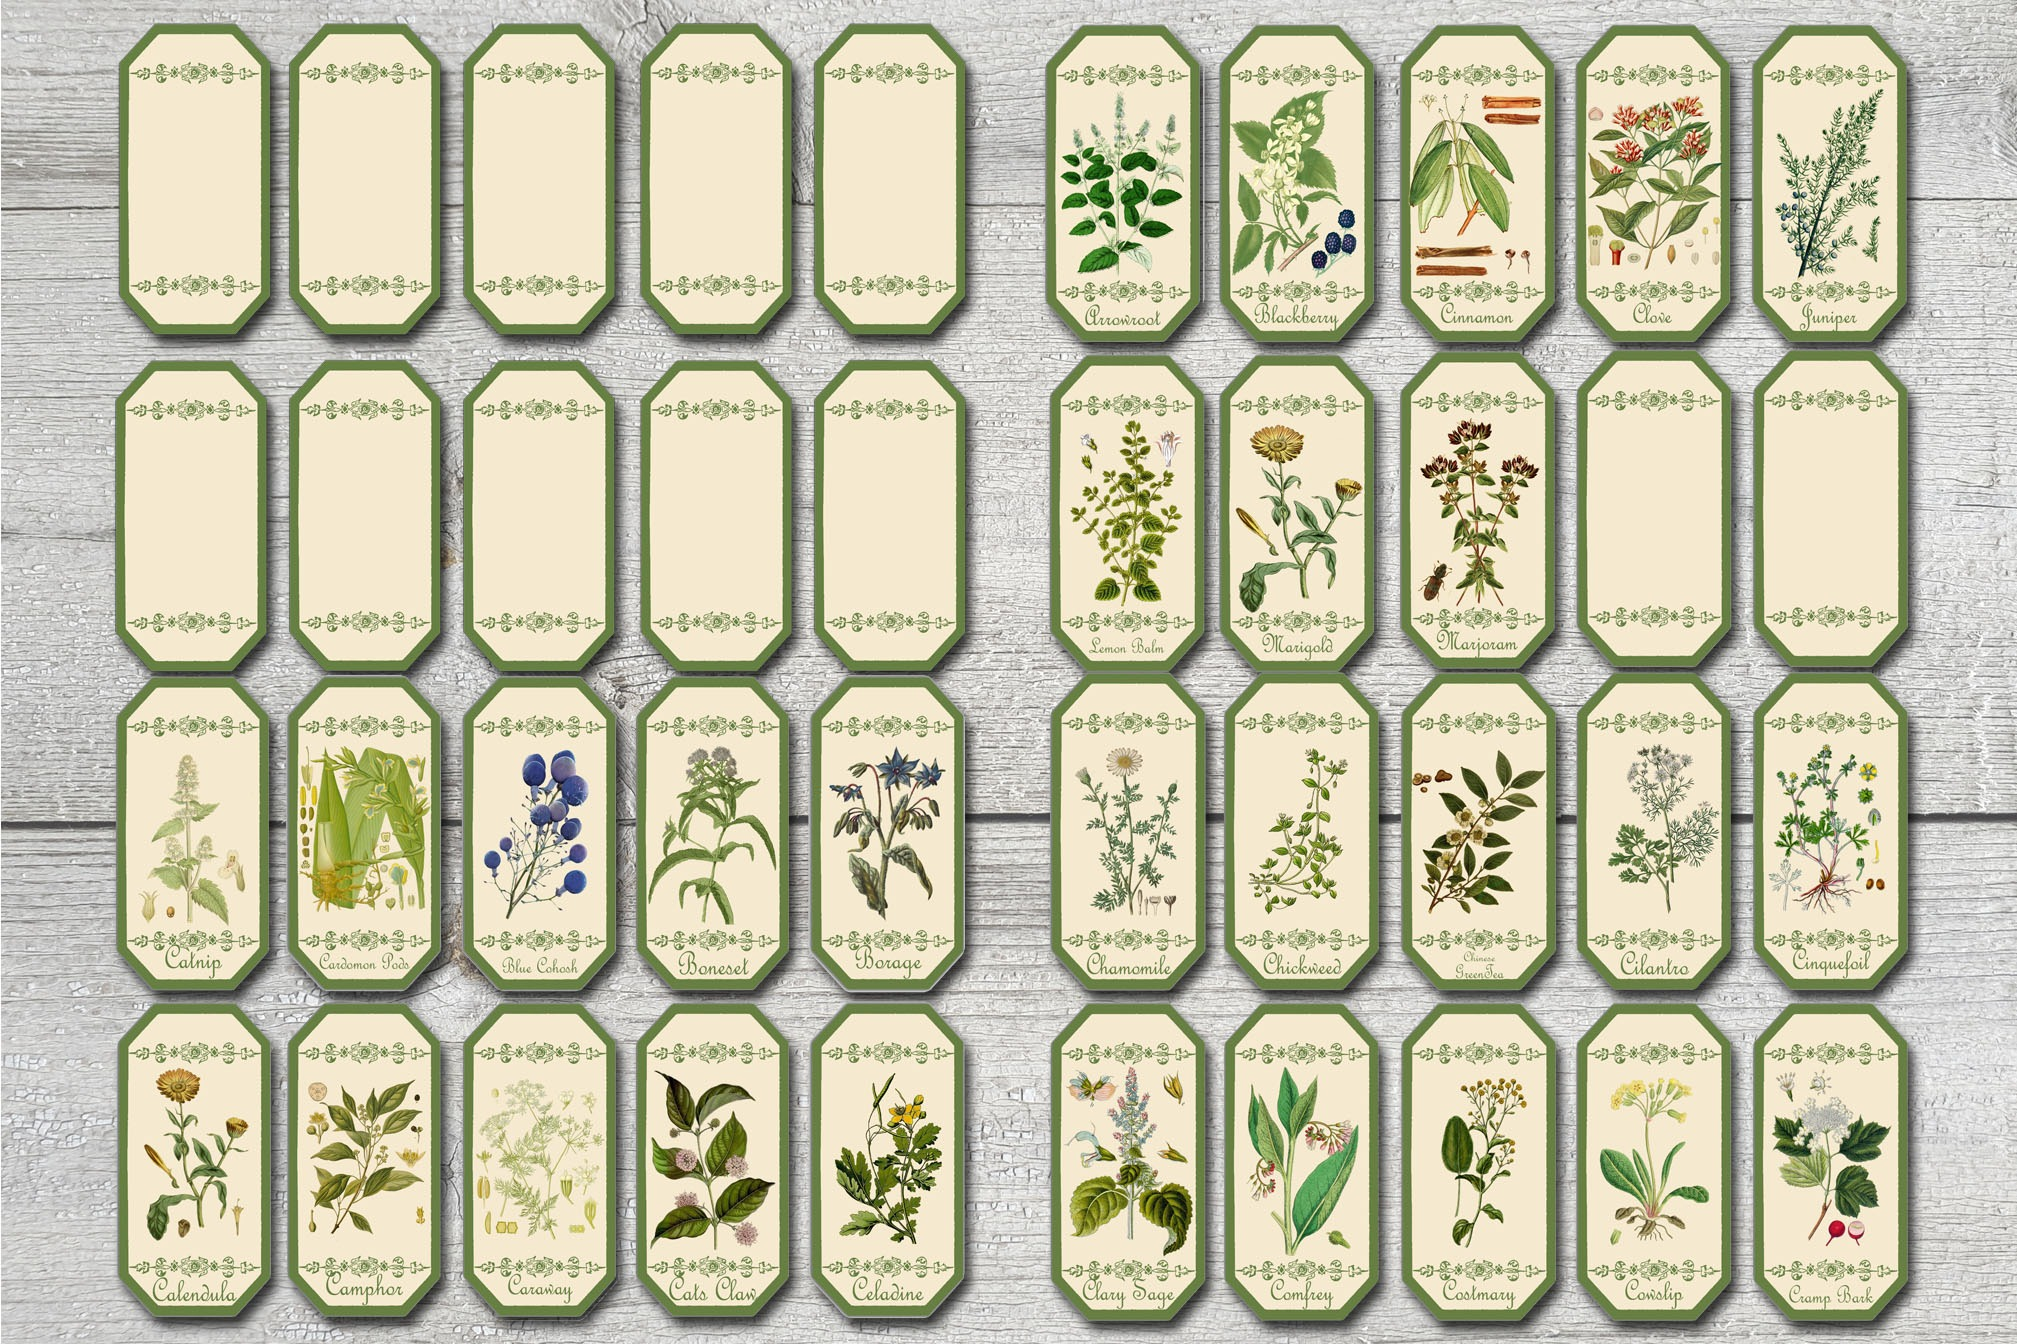 100 LABELS Herbal Apothecary| Herb & Spice Labels